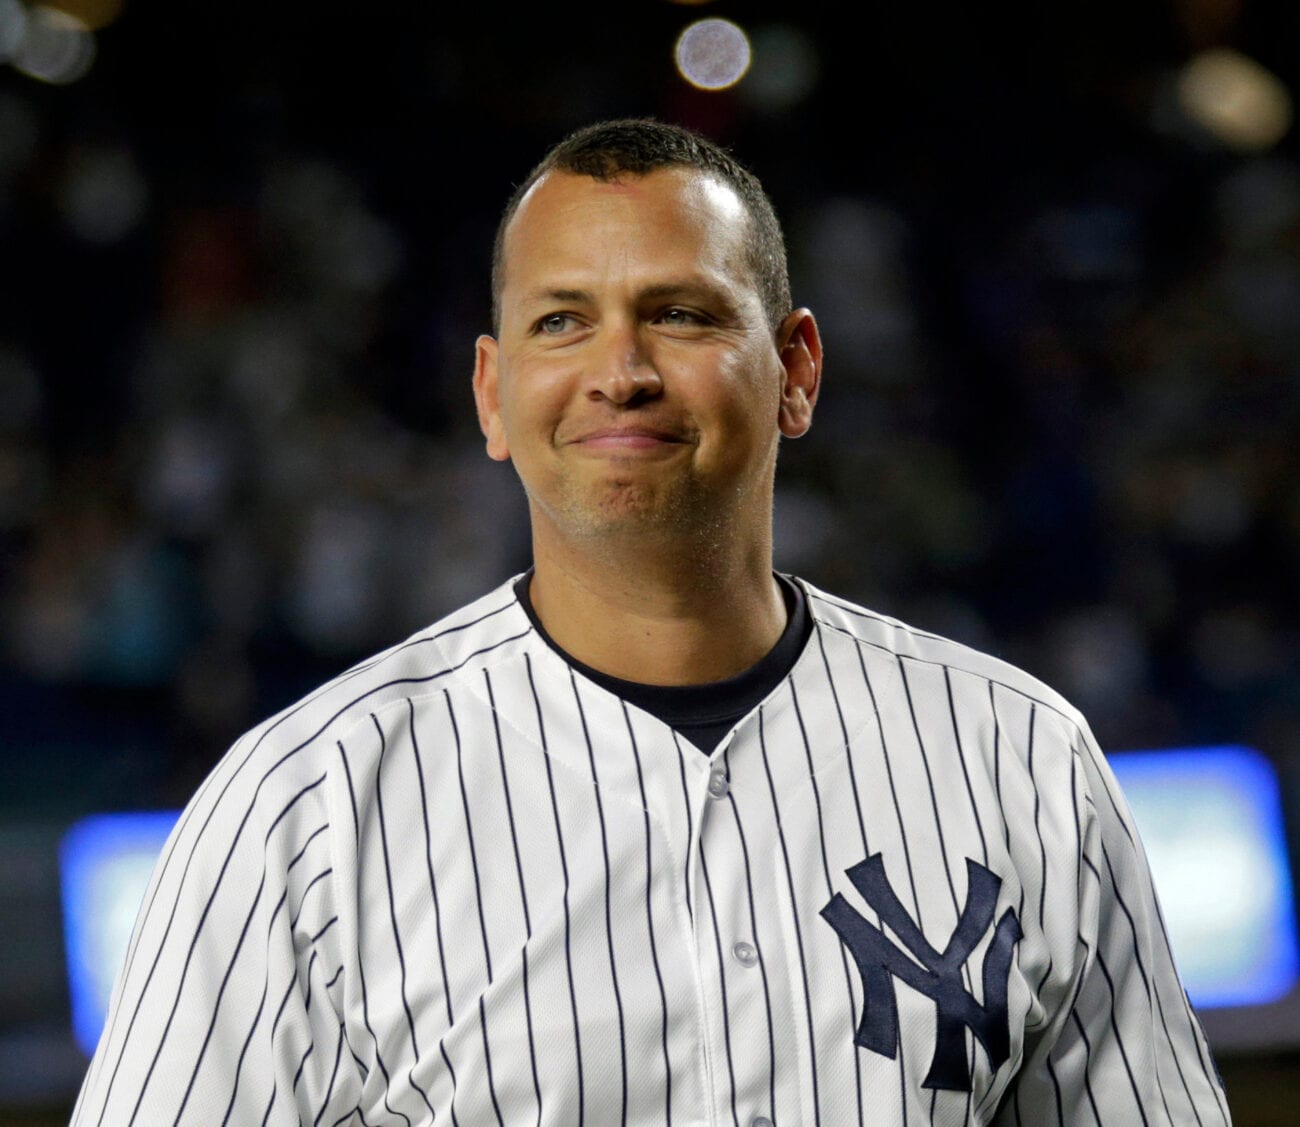 Think what you will about Alex Rodriguez, but you cannot deny this former baseball prodigy's huge net worth, a number so large it must have used steroids.